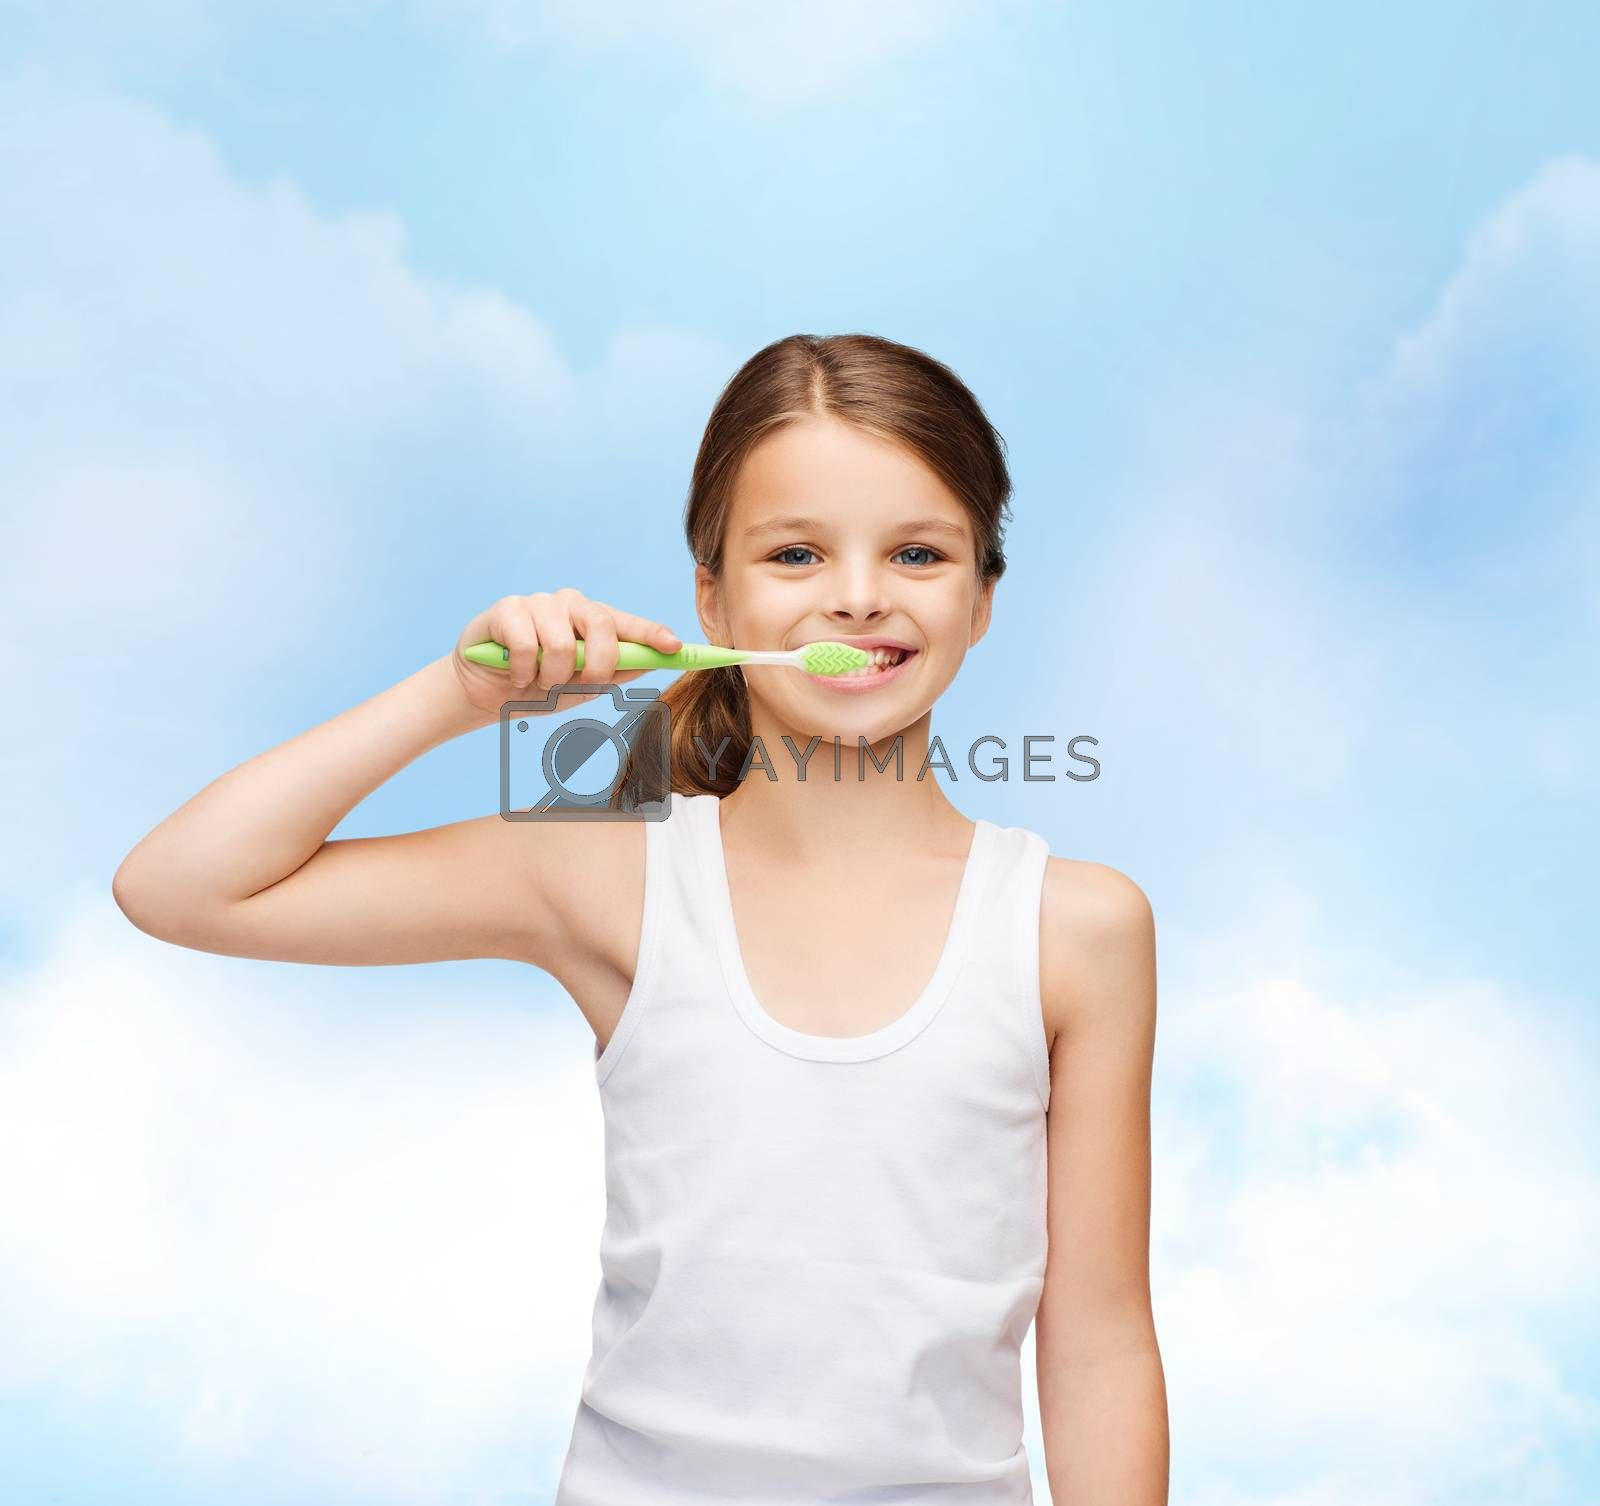 shirt design, health, oral hygiene, dental concept - smiling teenage girl in blank white shirt brushing her teeth